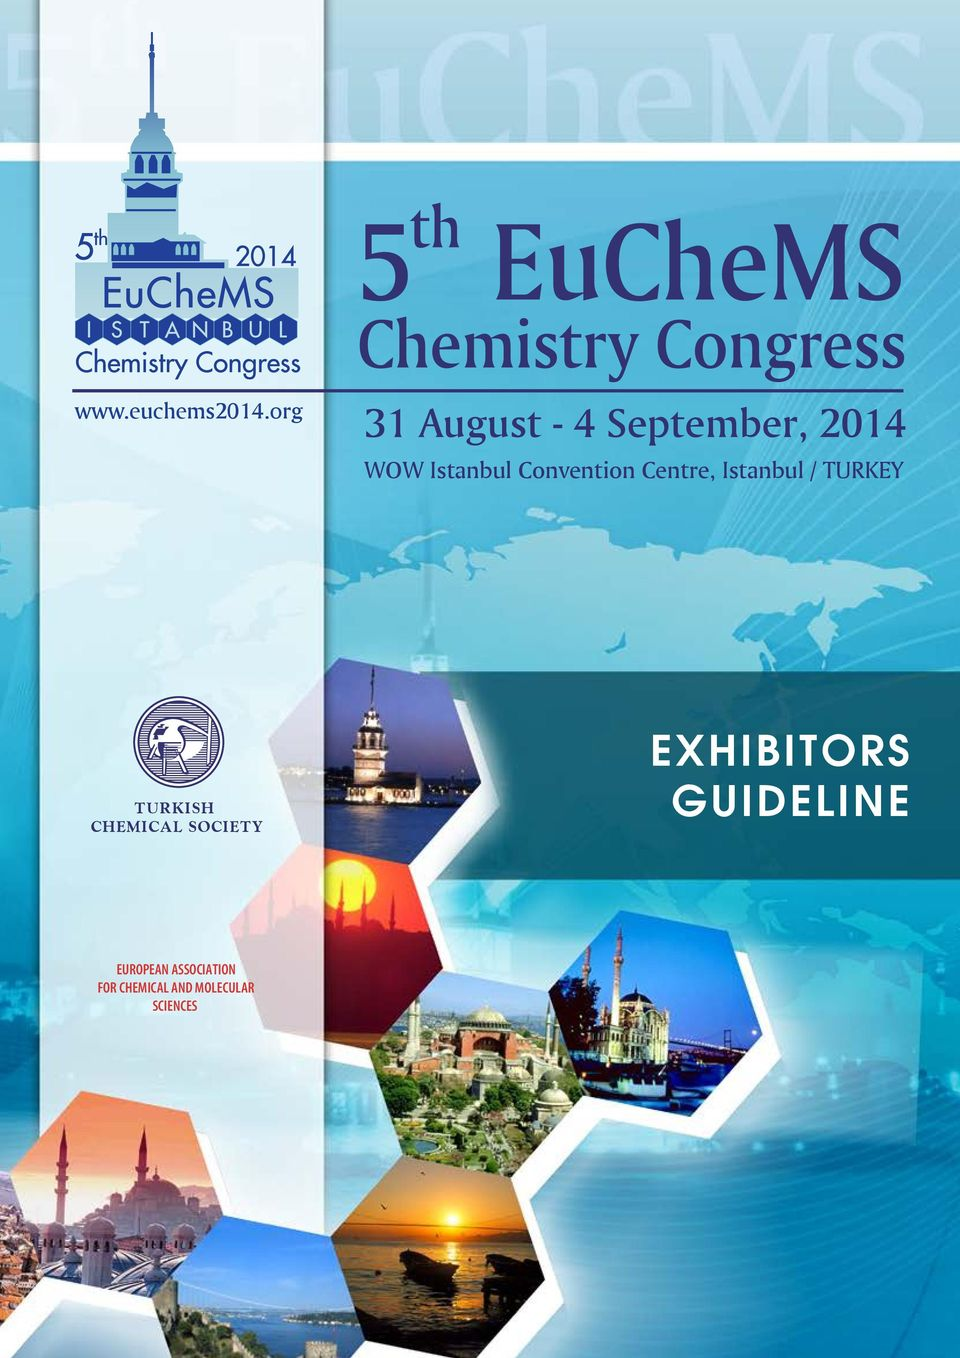 CHEMICAL SOCIETY EXHIBITORS GUIDELINE